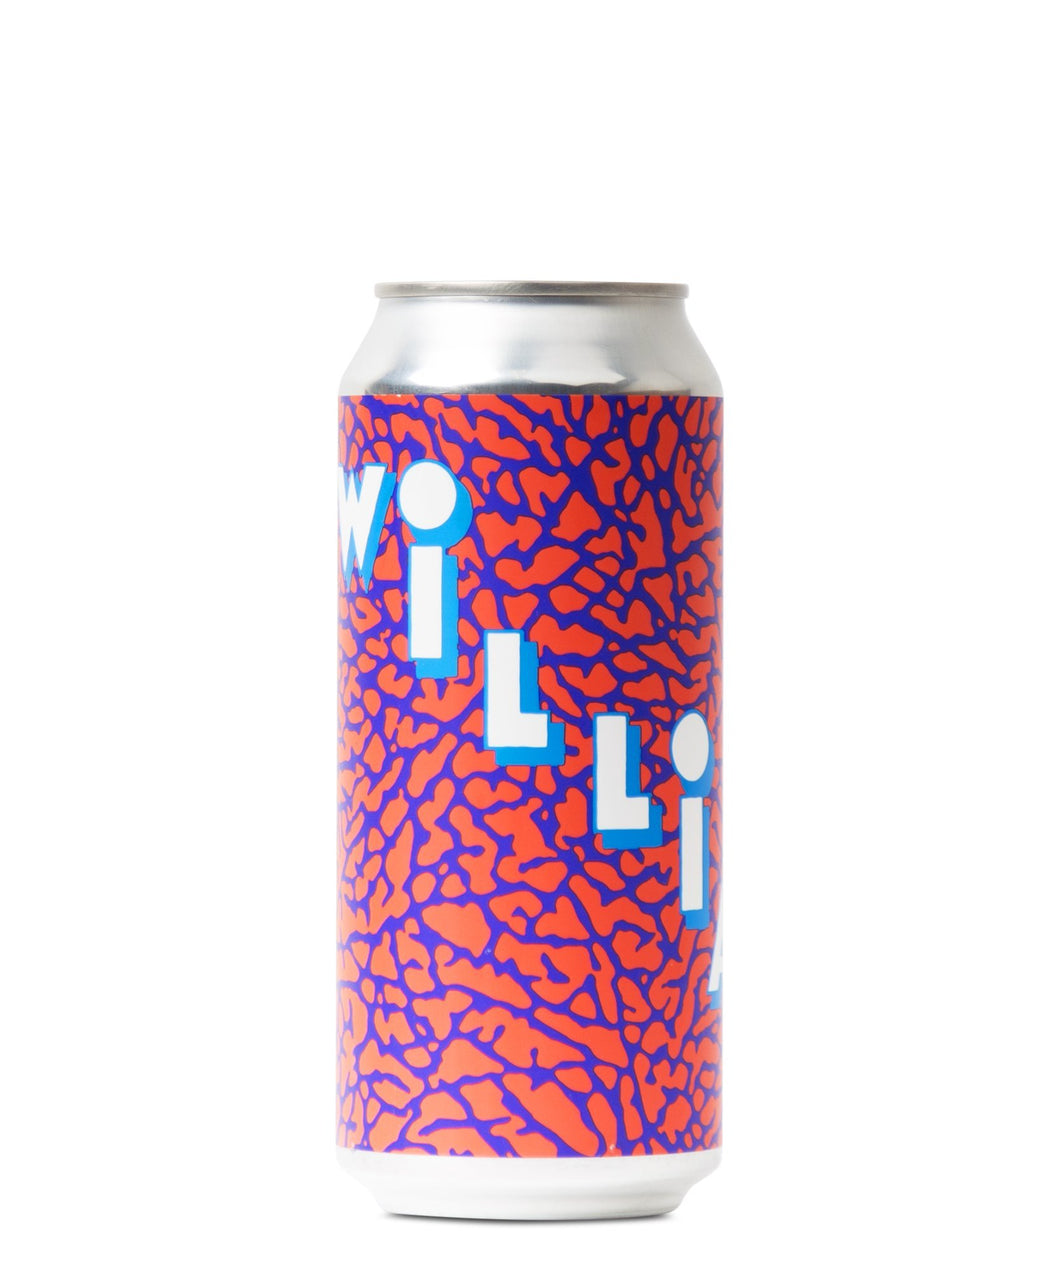 William - Omnipollo Delivered By TapRm